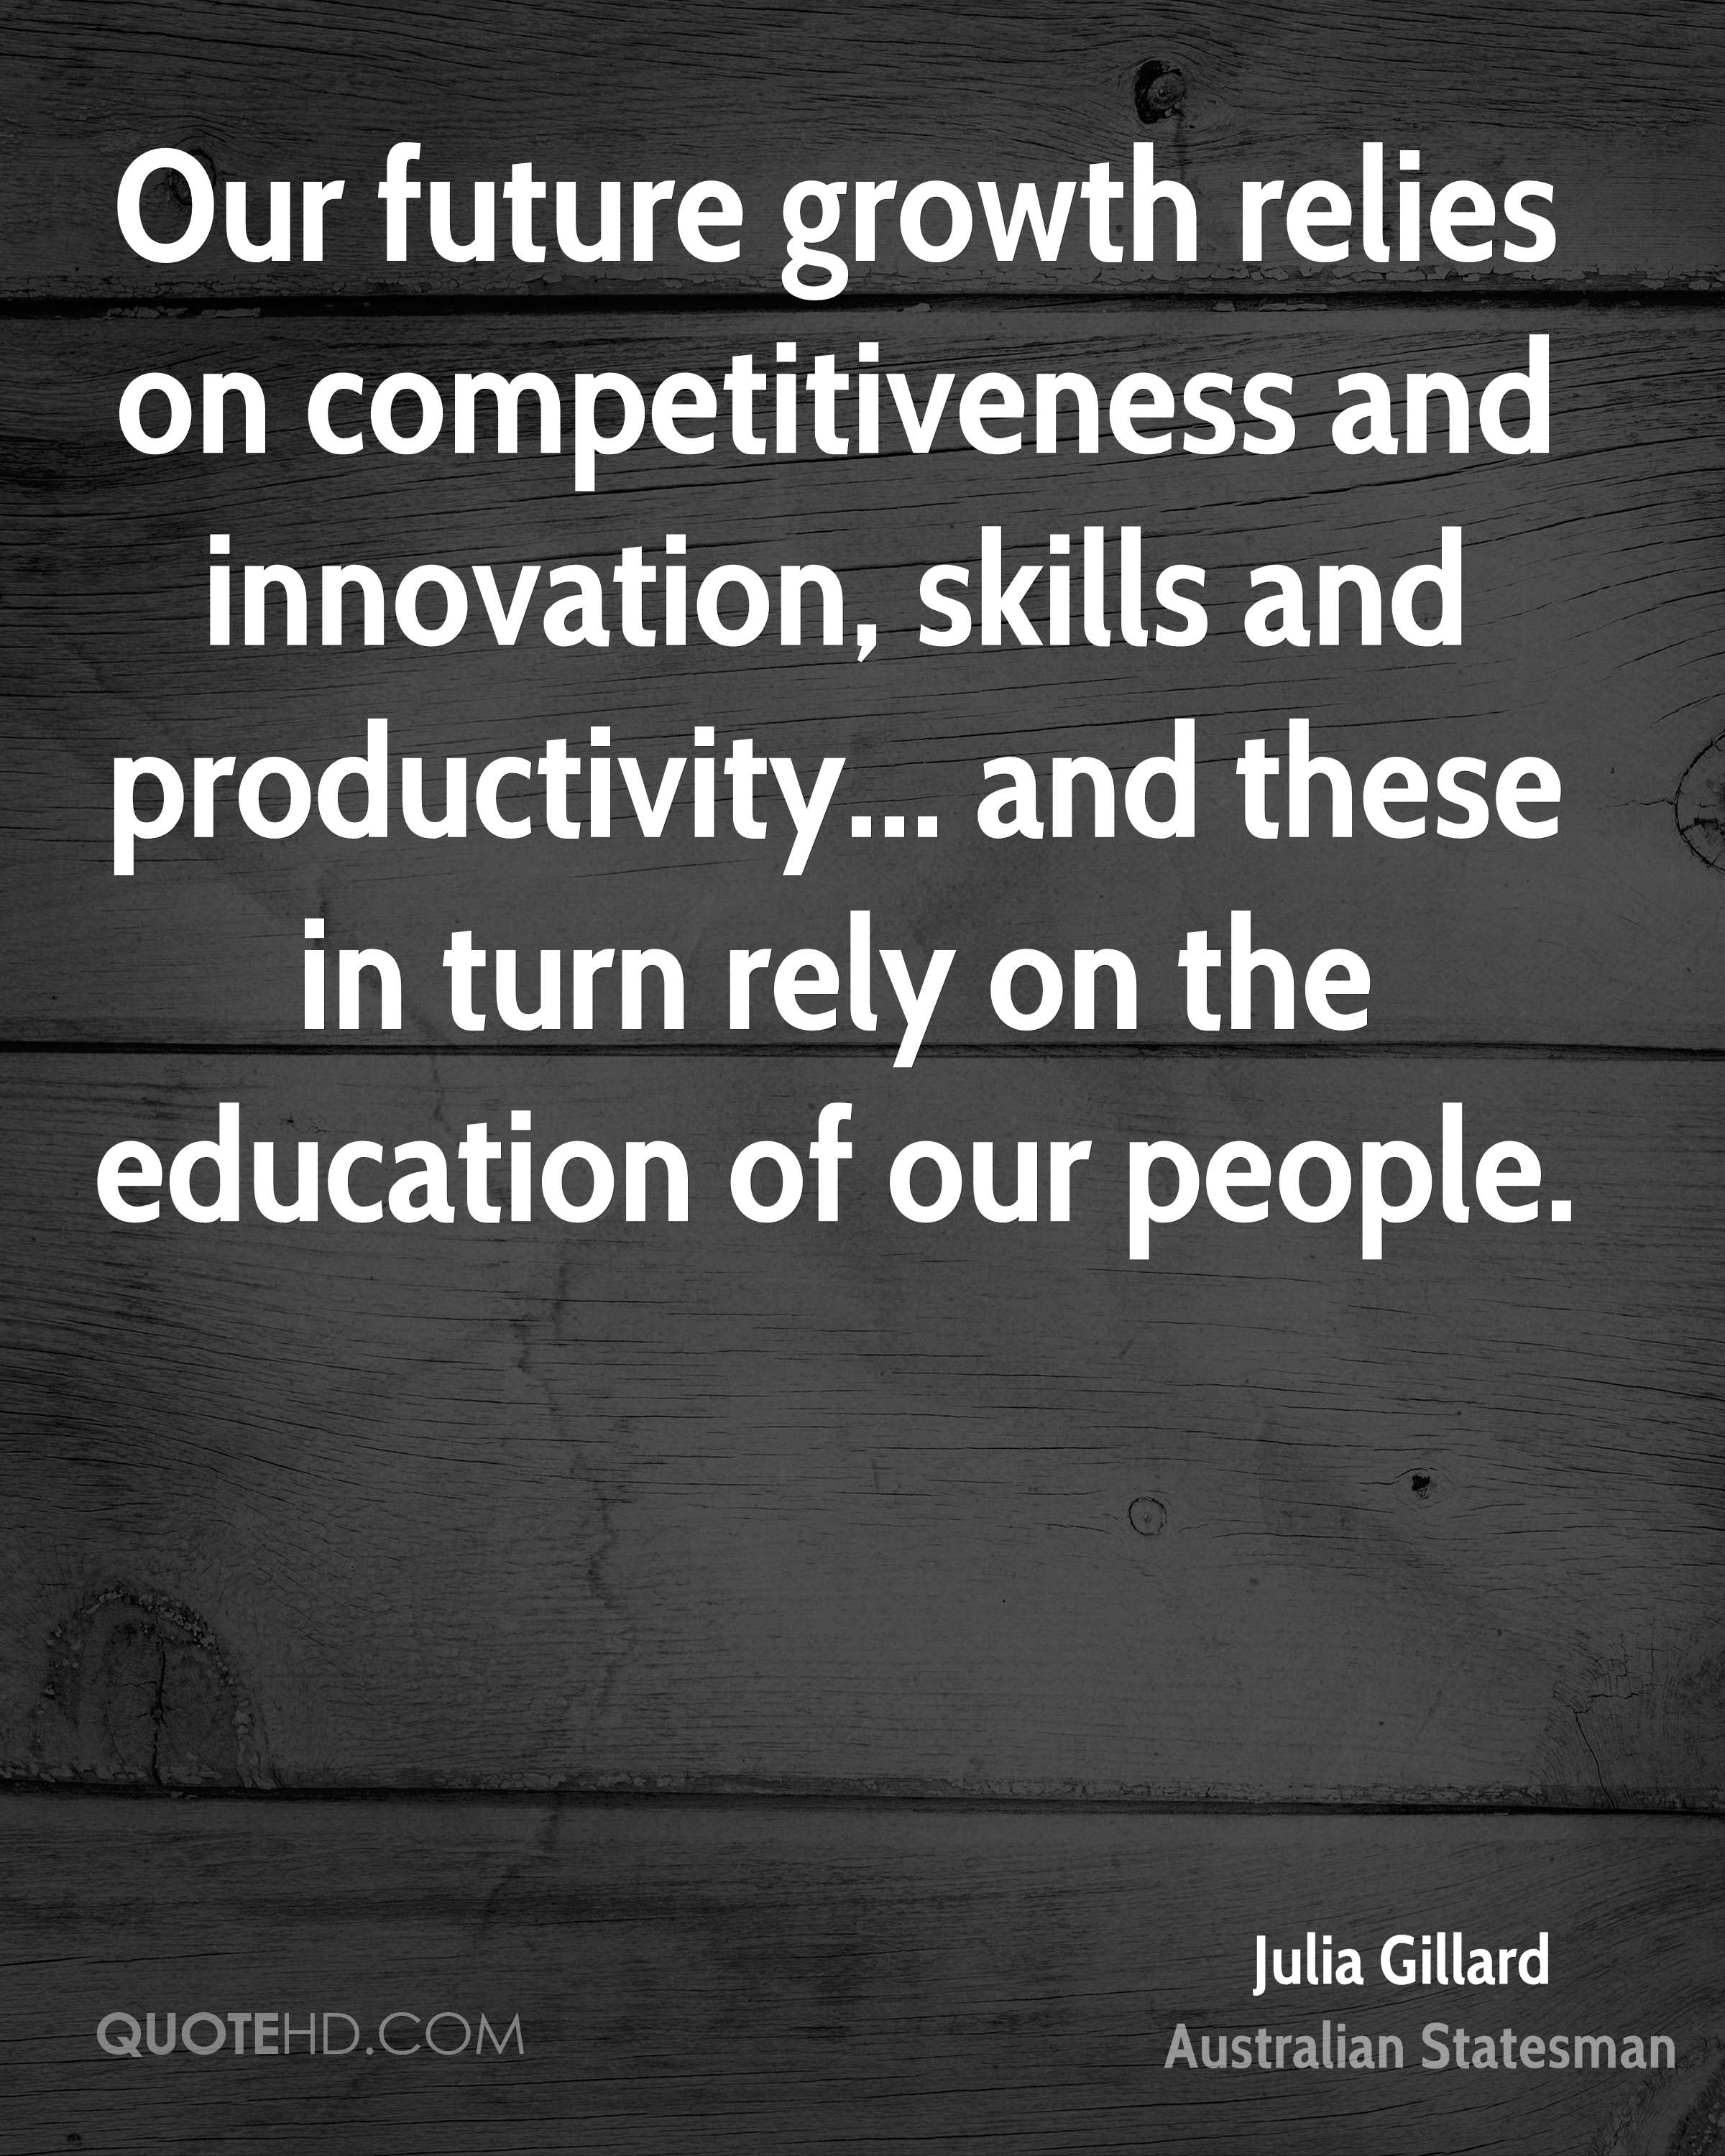 Our future growth relies on competitiveness and innovation, skills and productivity... and these in turn rely on the education of our people.